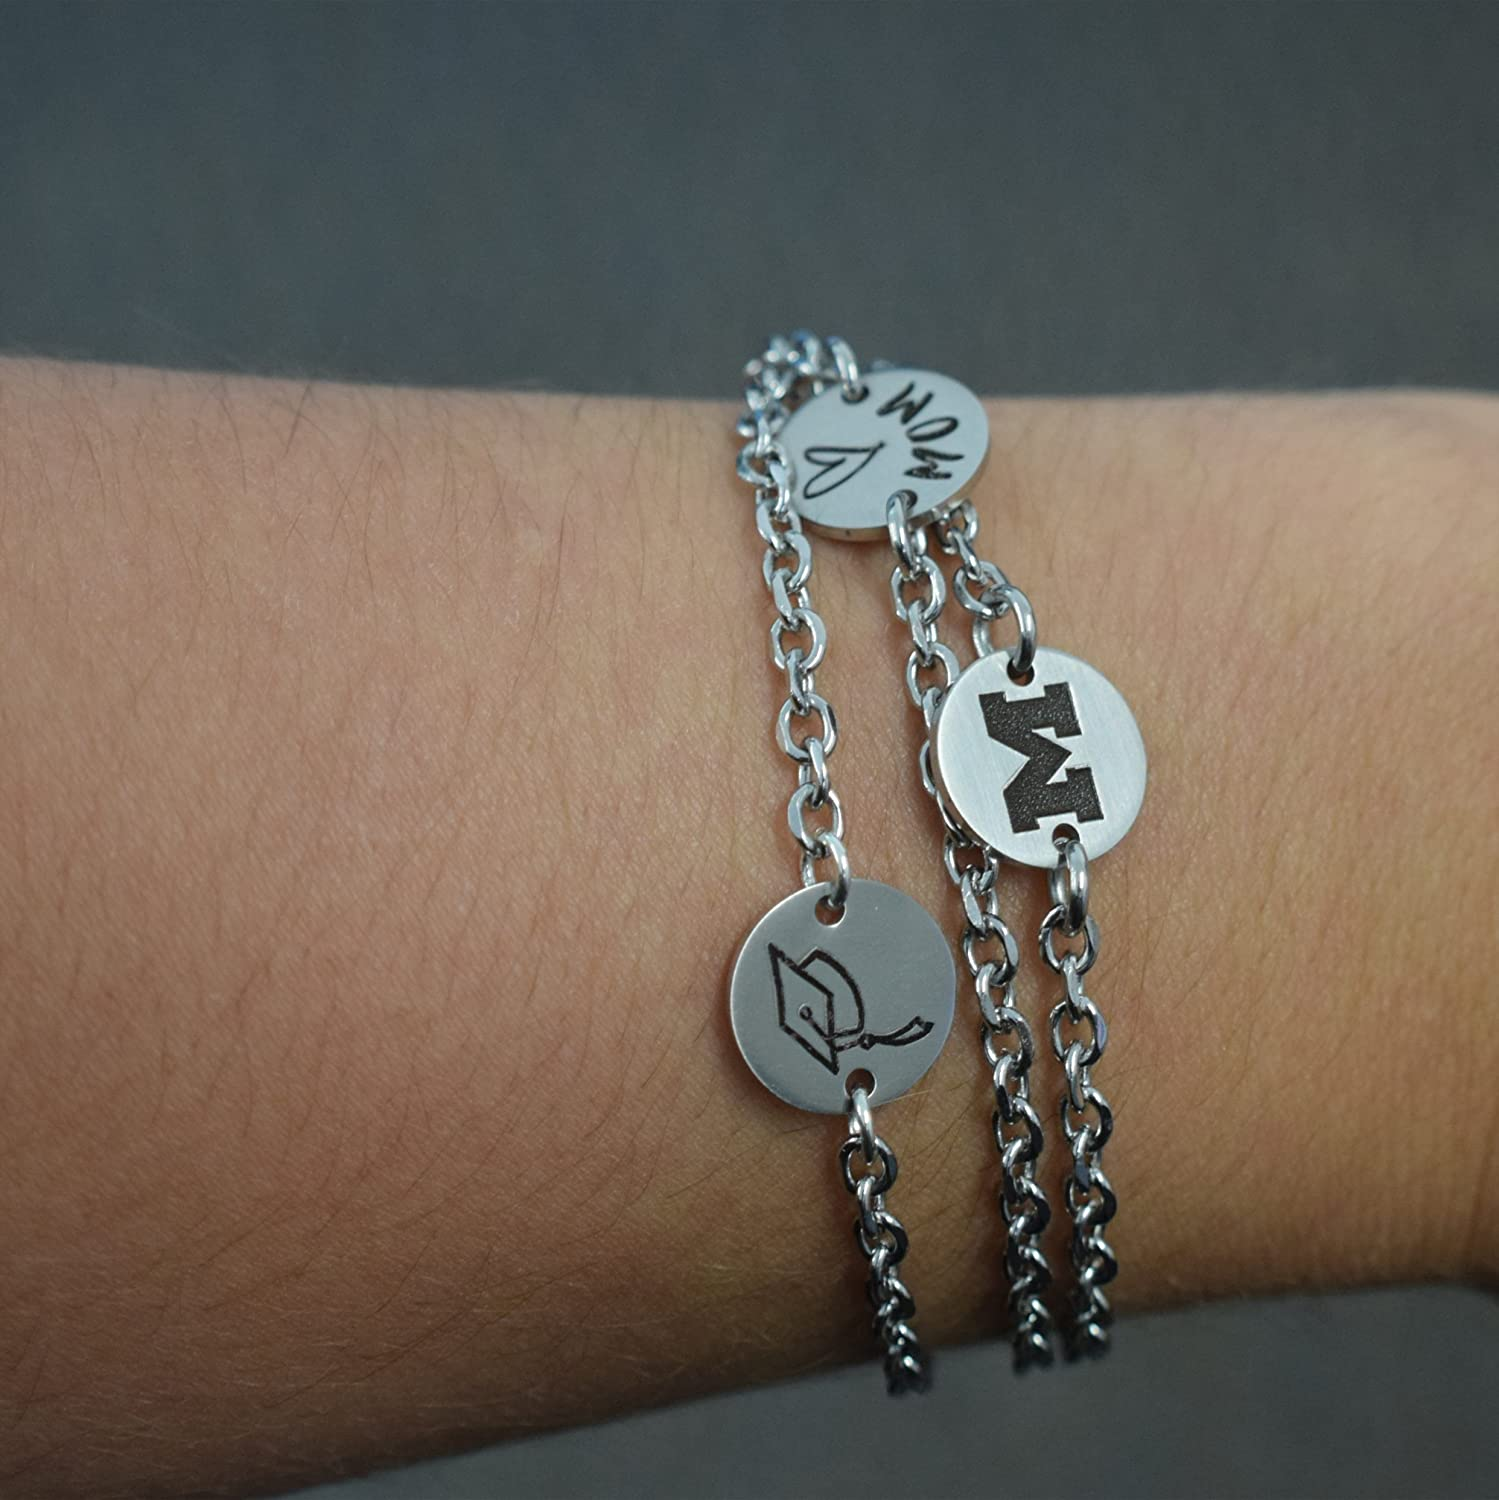 South Florida Bulls Stainless Steel Link Bracelet with Round Charm 8in, School